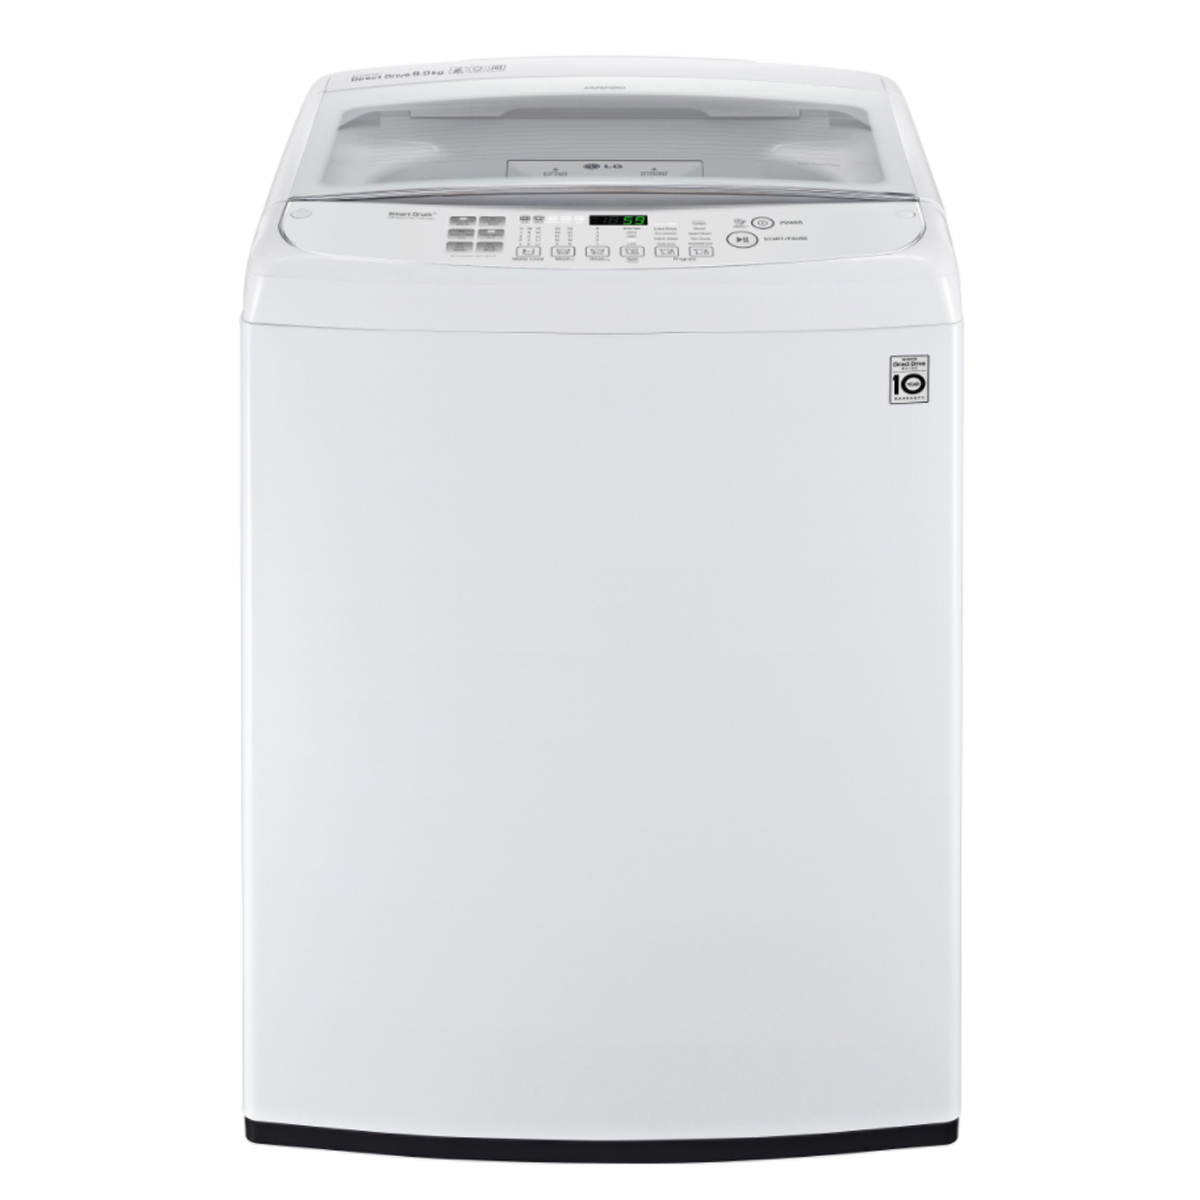 LG WTG9032WF 9kg Top Load Washing Machine 136637